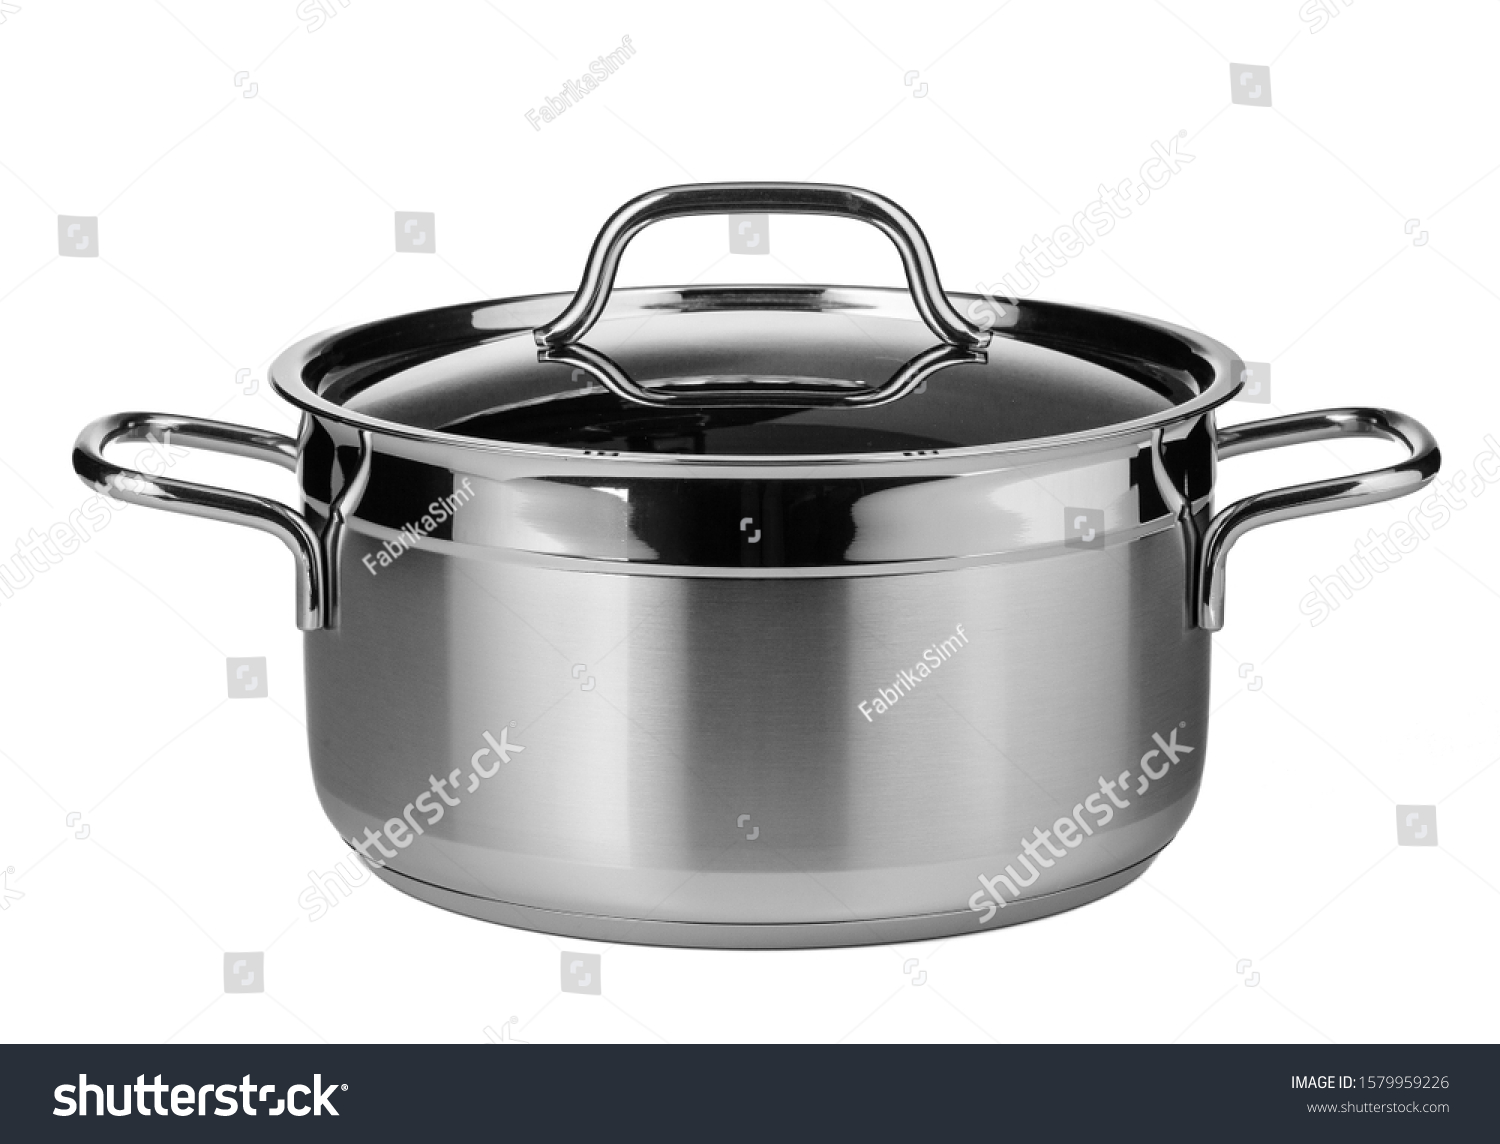 Stainless steel pot isolated on white background #1579959226